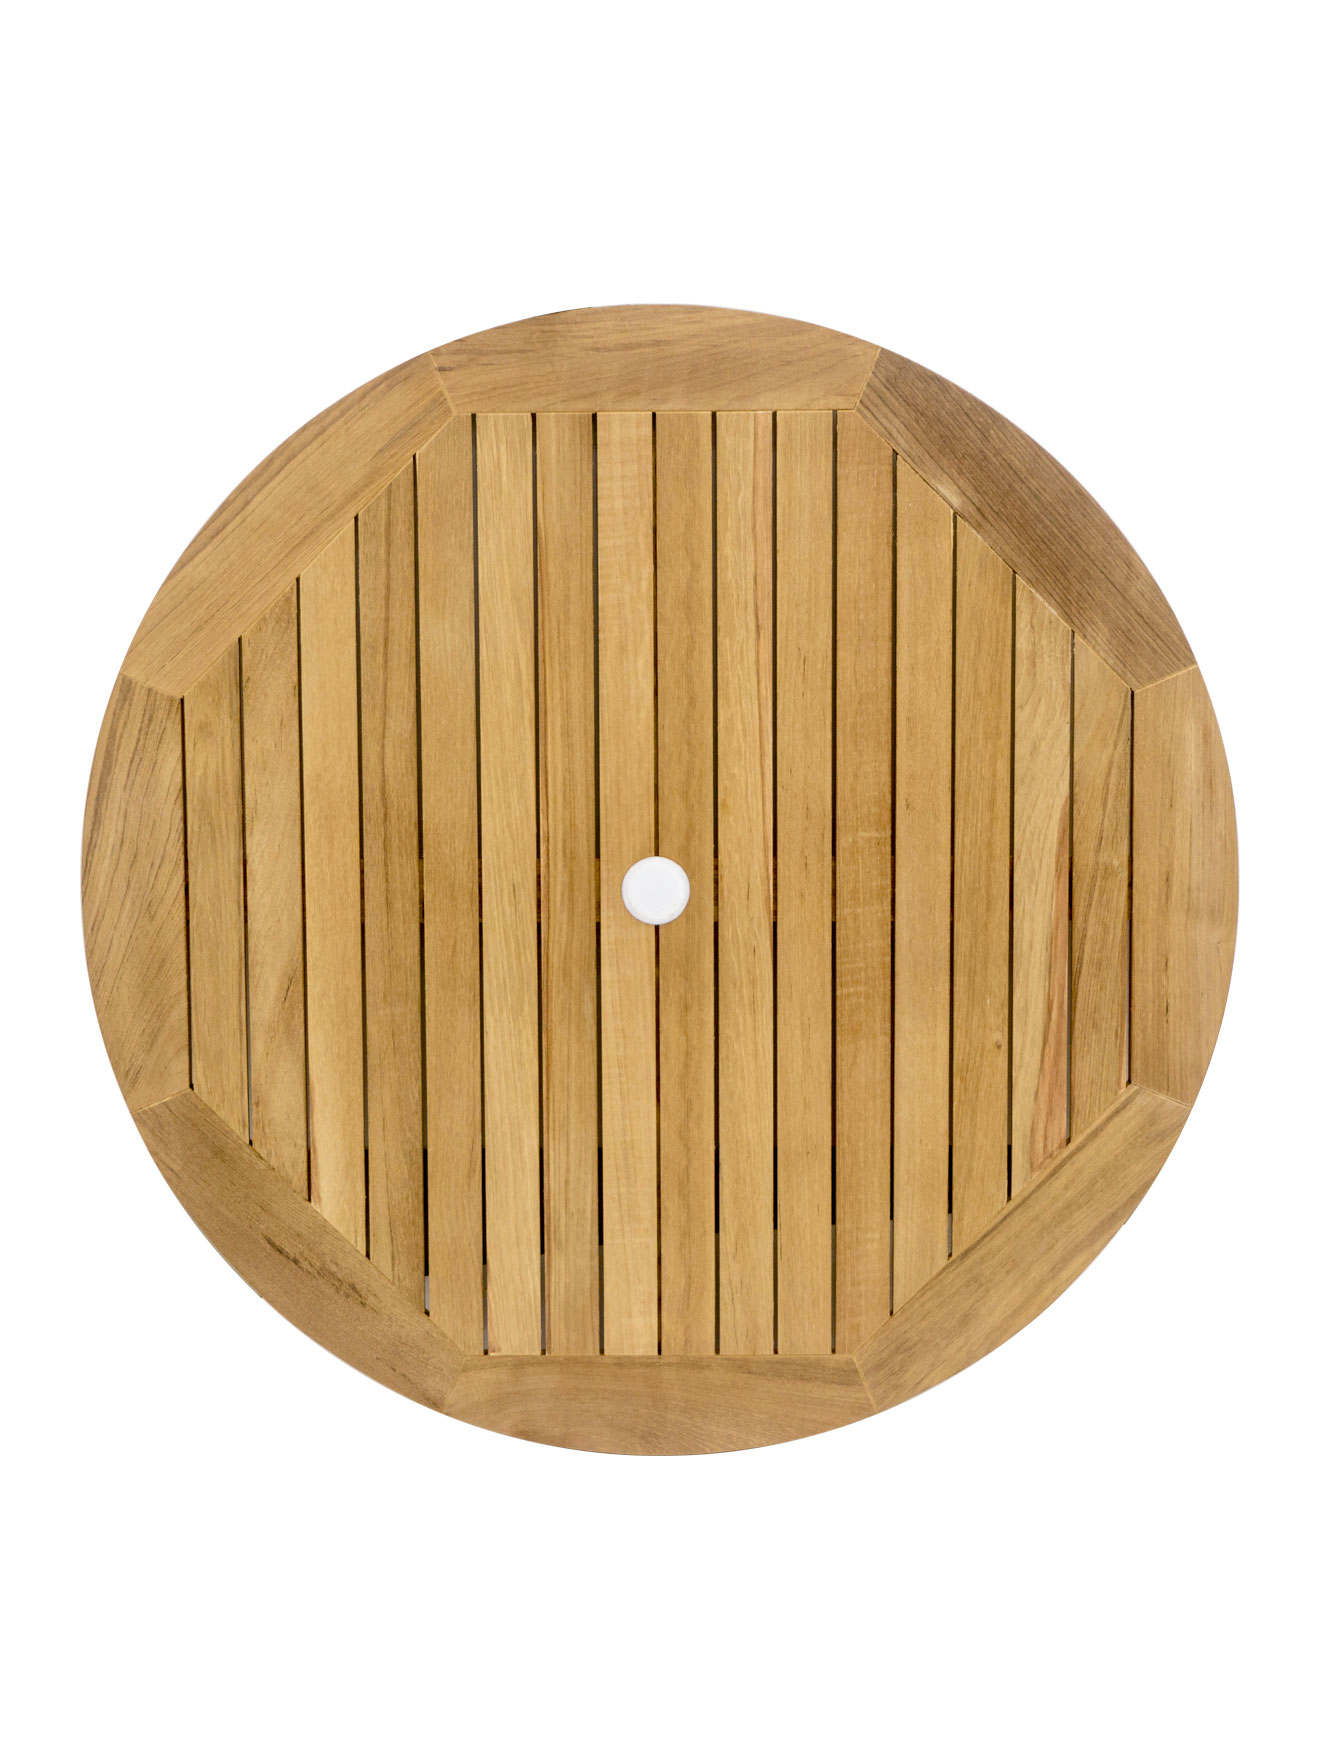 Real Teak Wood Round Indoor/Outdoor Table Top